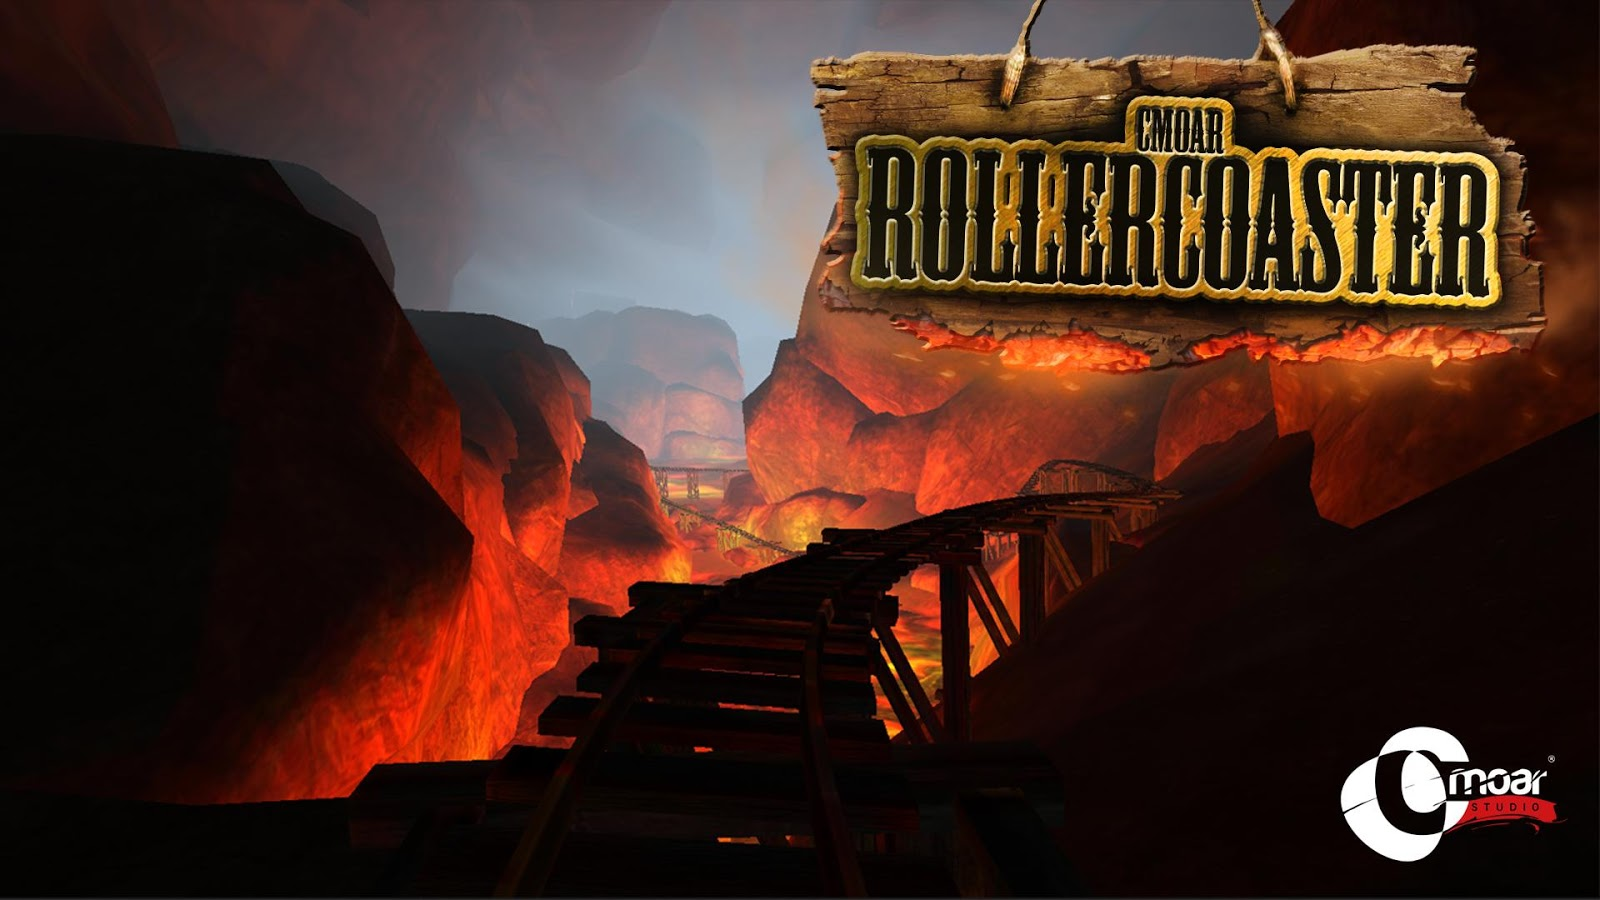 Cmoar Roller Coaster VR- screenshot